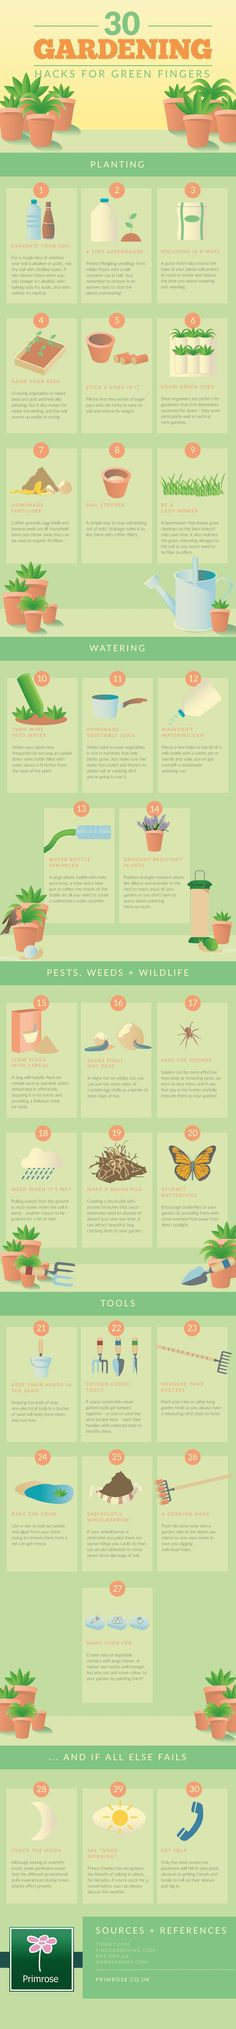 time-saving gardening hacks - including advice for repelling pests, attracting butterflies and more.